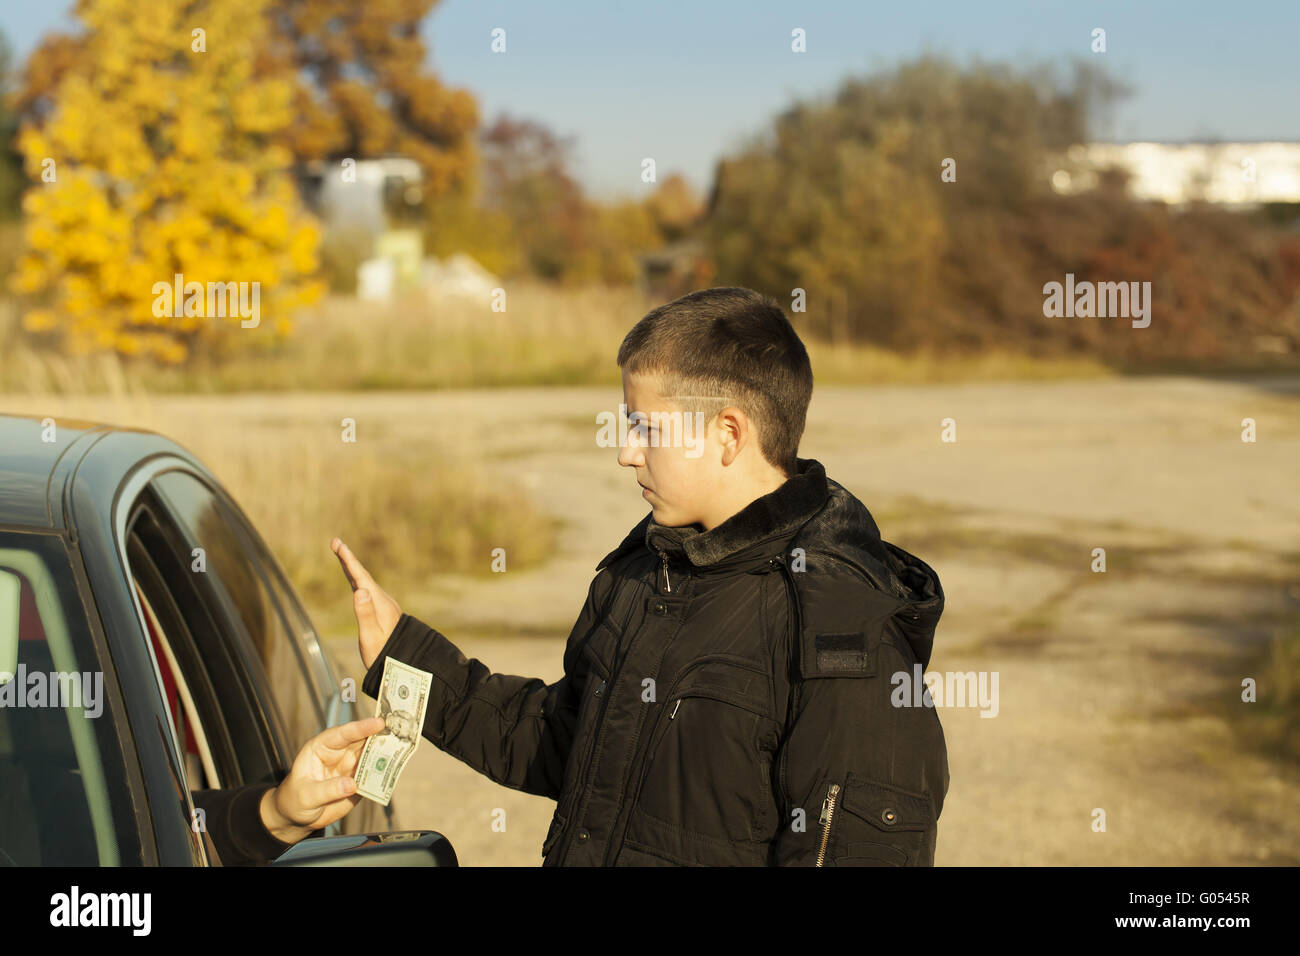 Someone from the car is offering money to the boy - Stock Image